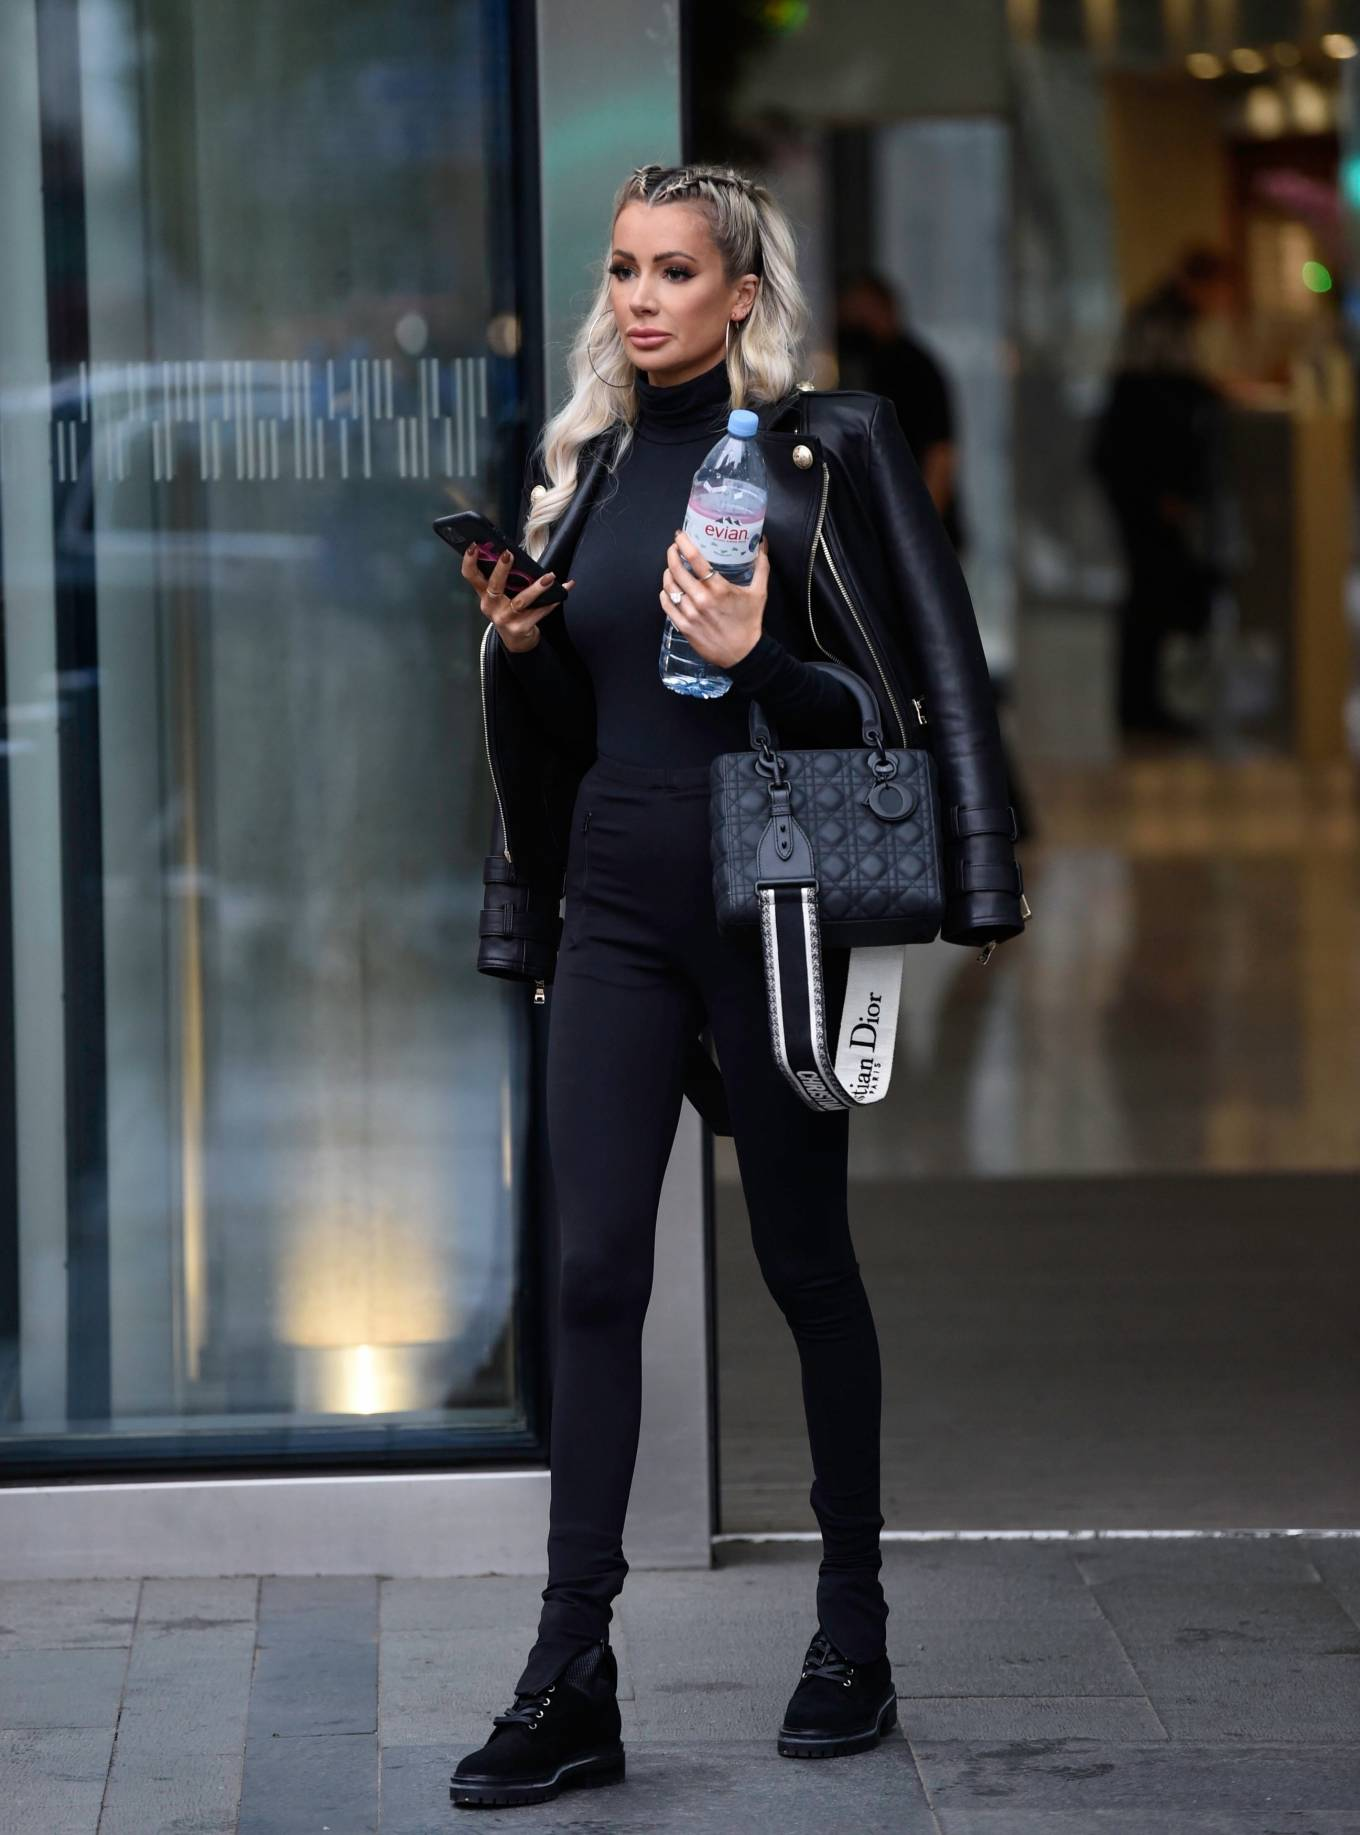 Olivia Attwood - Spotted at Manchester City Center